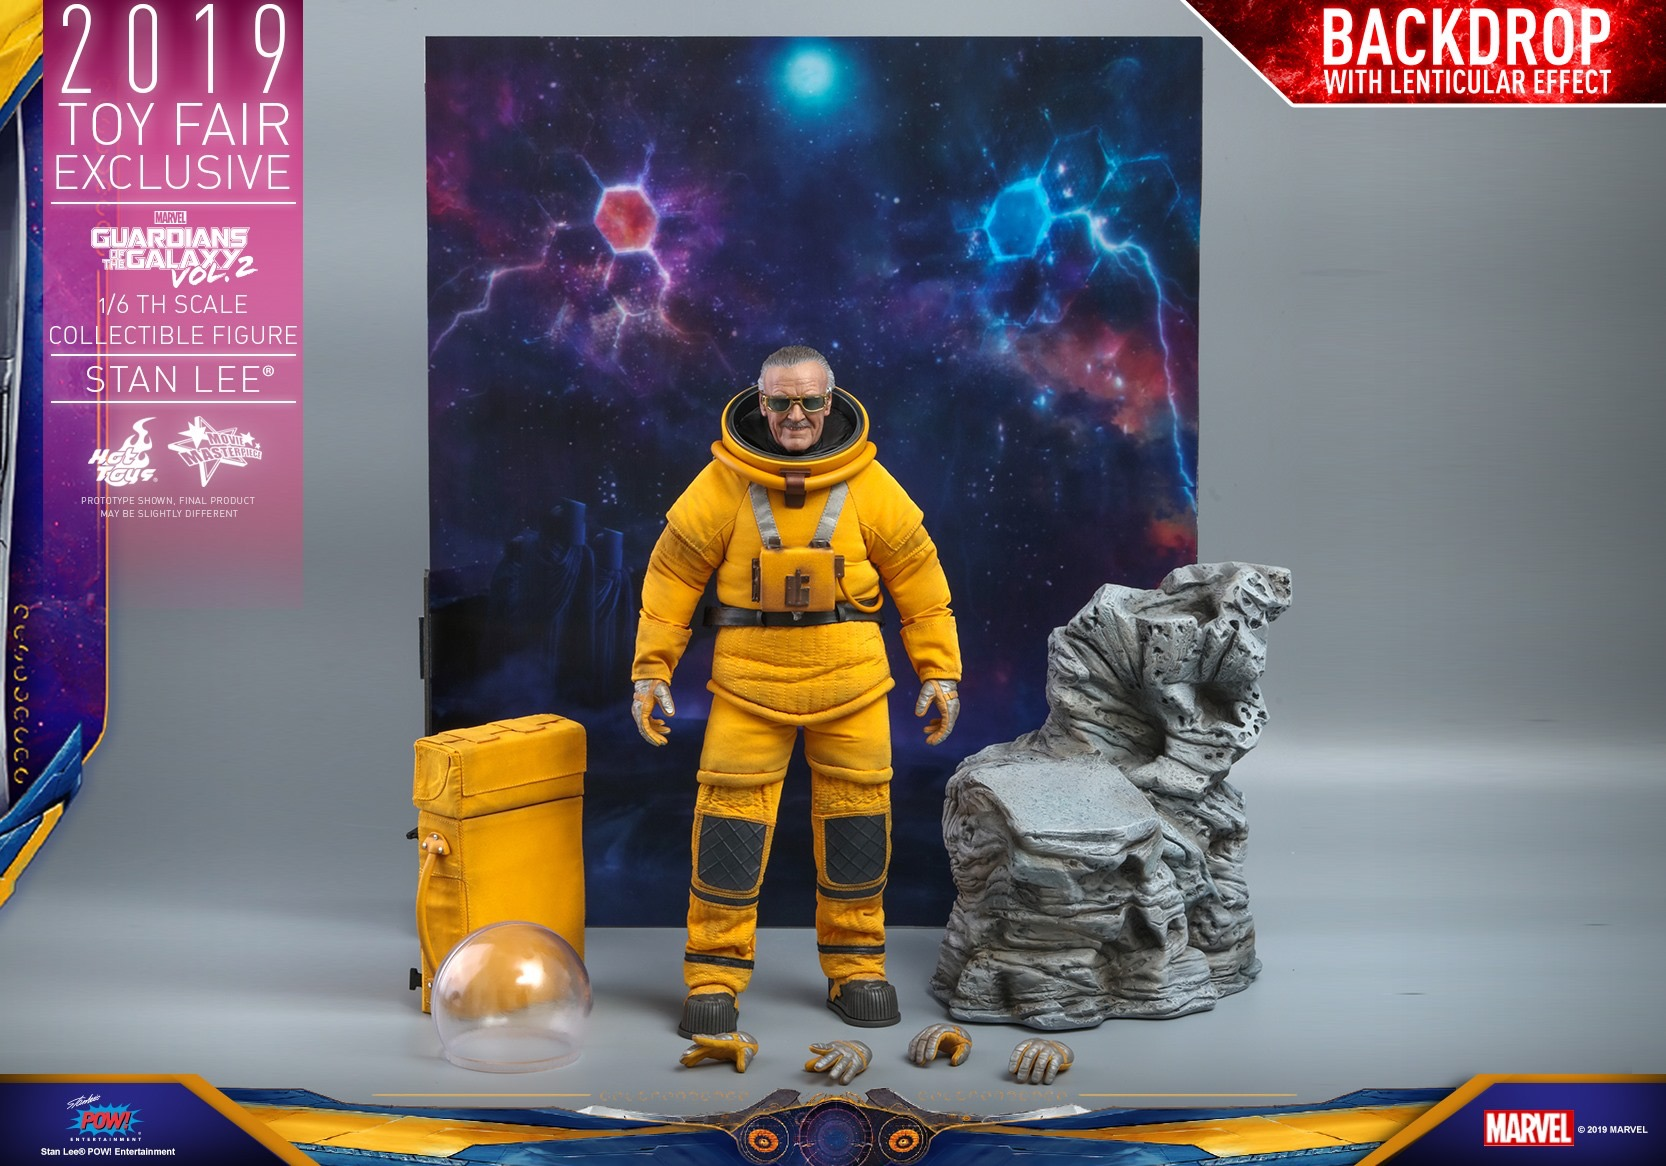 EXCLUSIVE Hot Toys Stan Lee GOTG Cameo Figure Up for Order ...